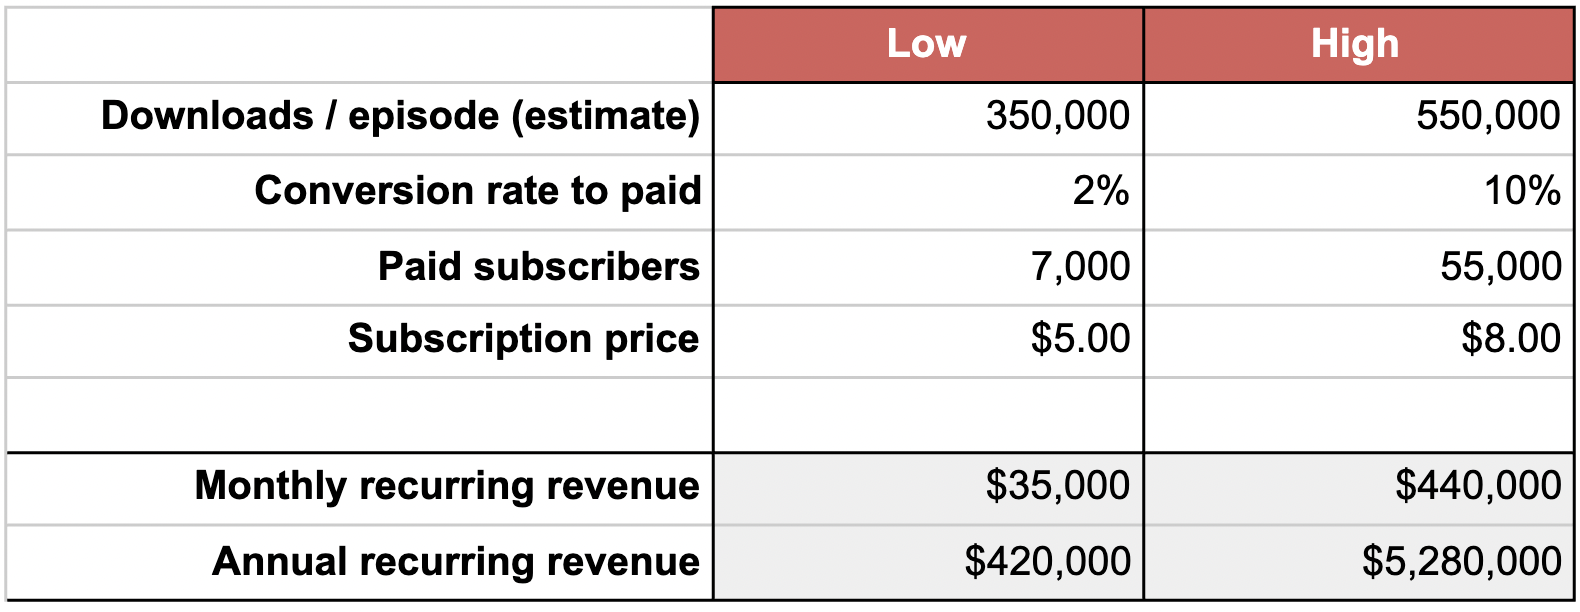 Chart of Revenue Projections for Audiochuck